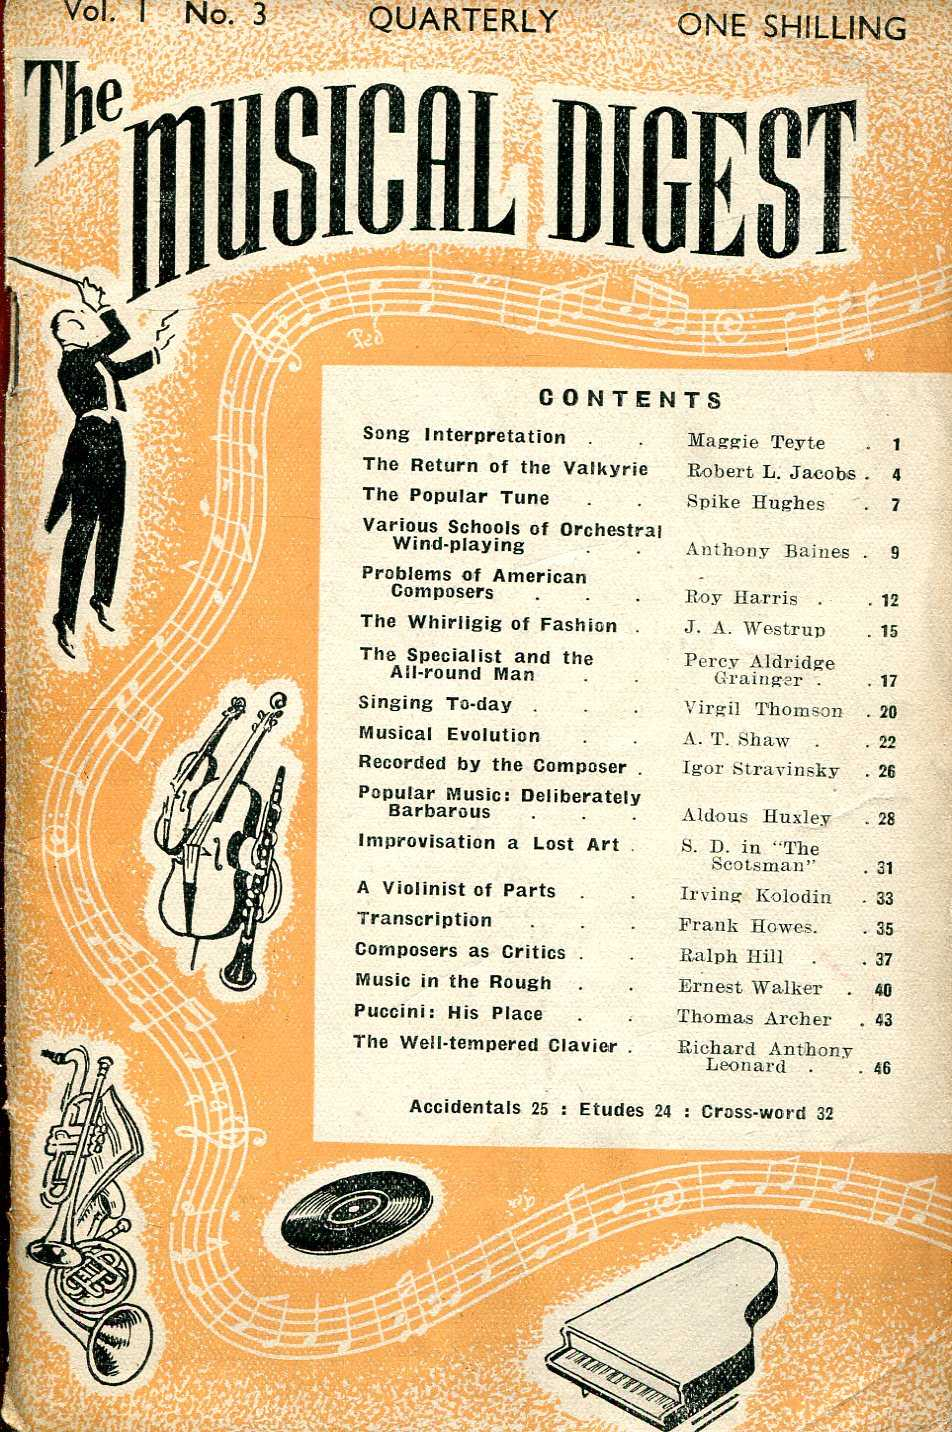 Image for The Musical Digest Quarterly : Volume 1 No 3, August 1947